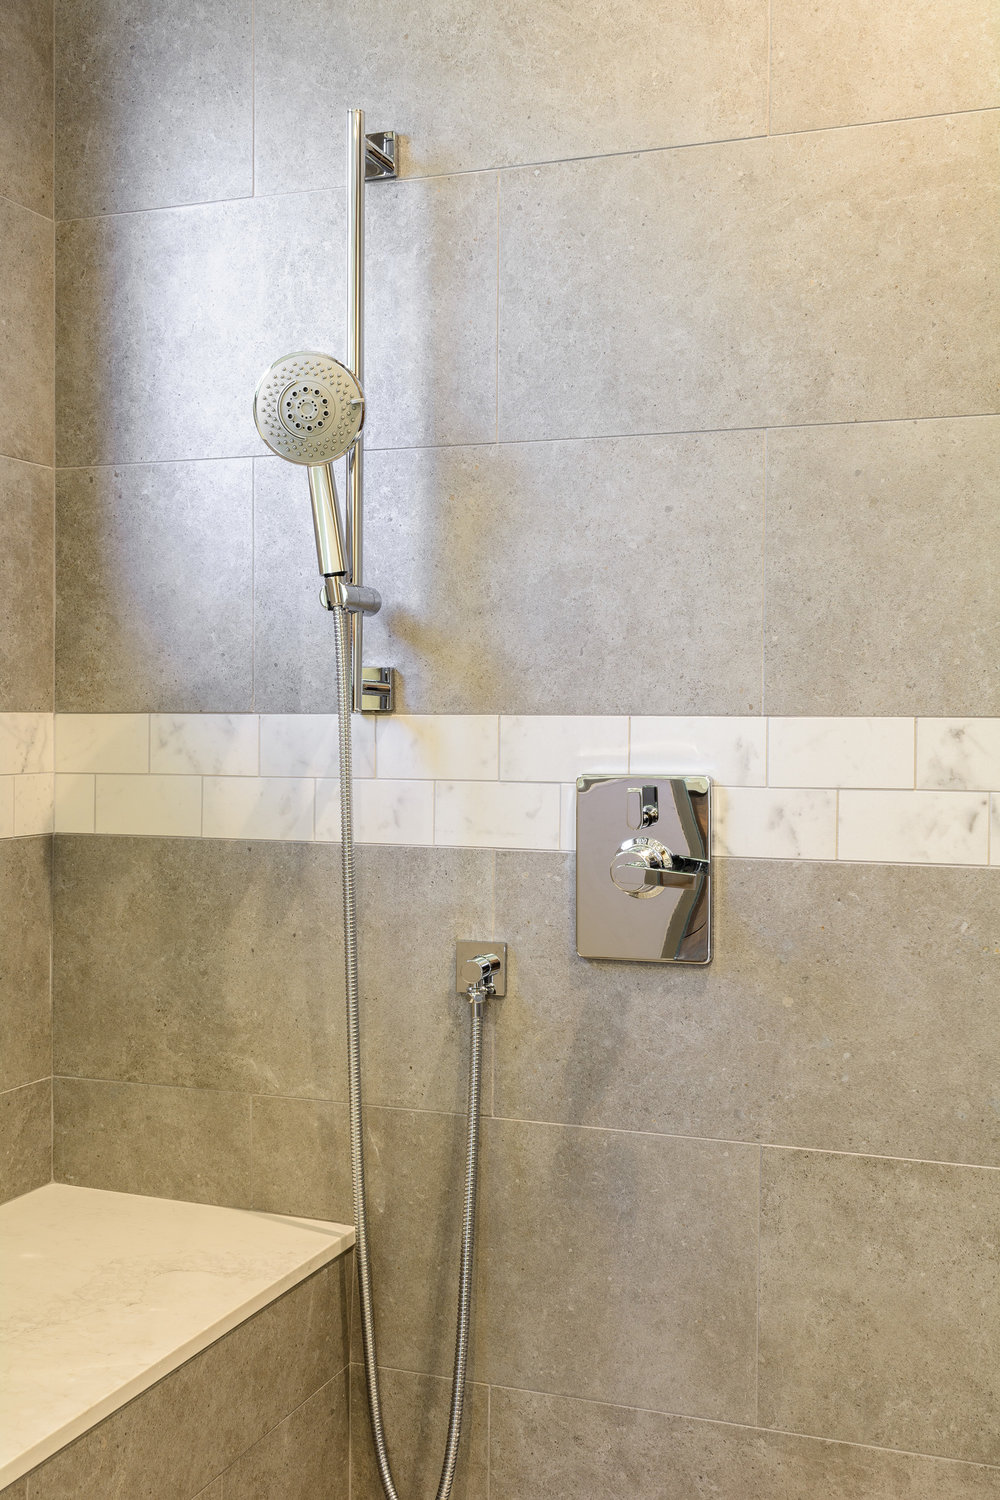 Grey shower wall with chrome shower valve and hand held fixture